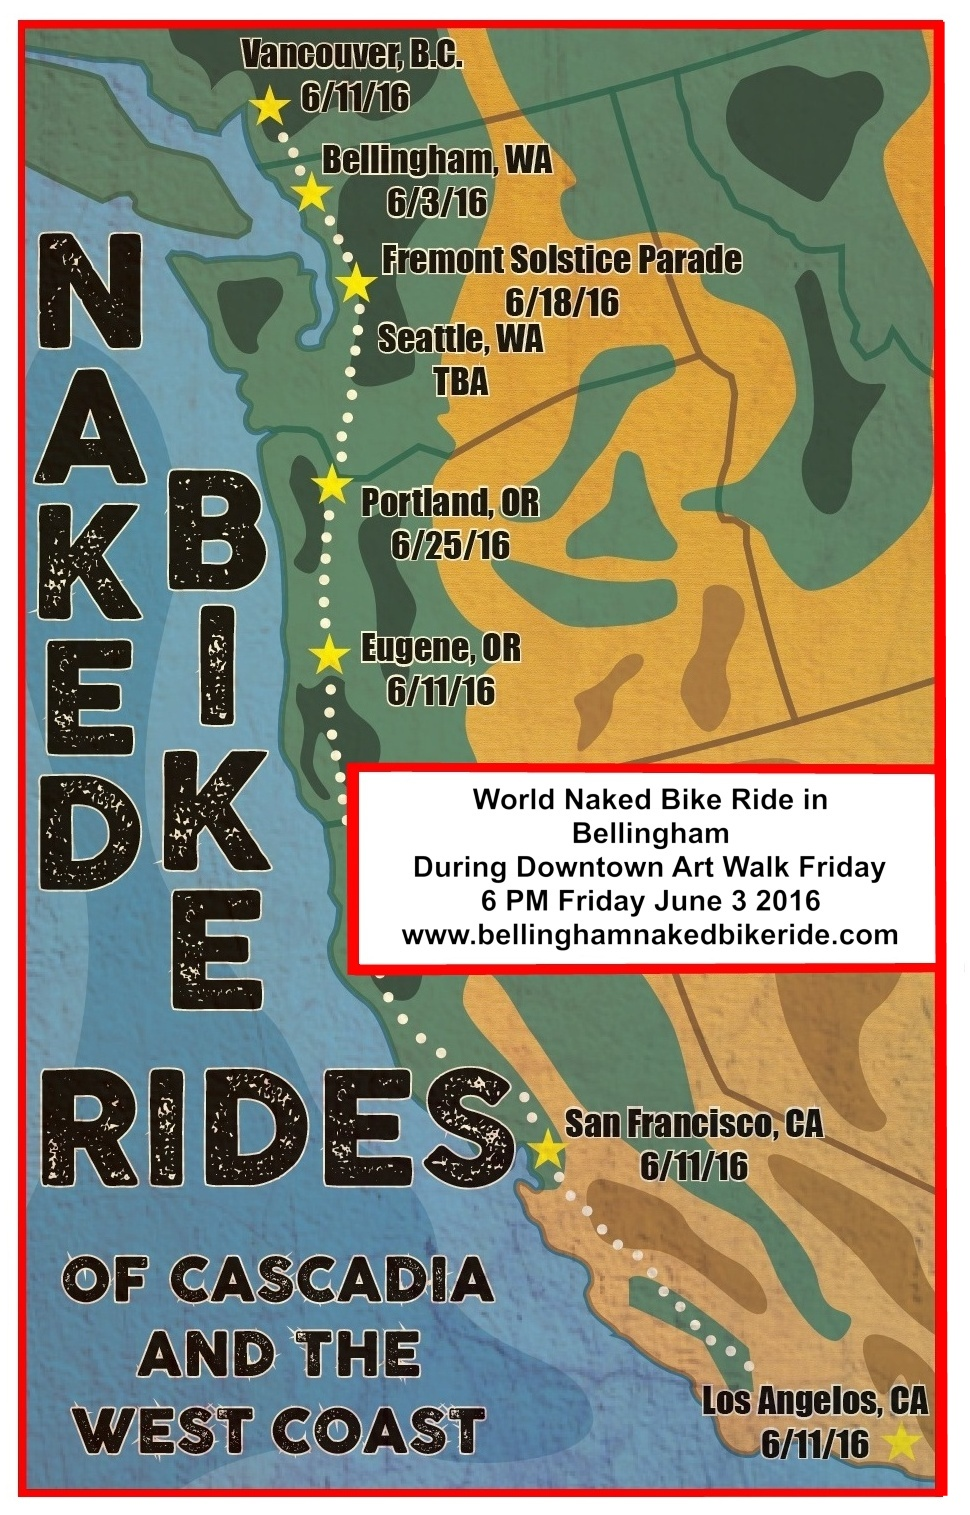 FileBellingham And Other Cities On USA West Coast With WNBR Ride - Us West Coast Map With Cities